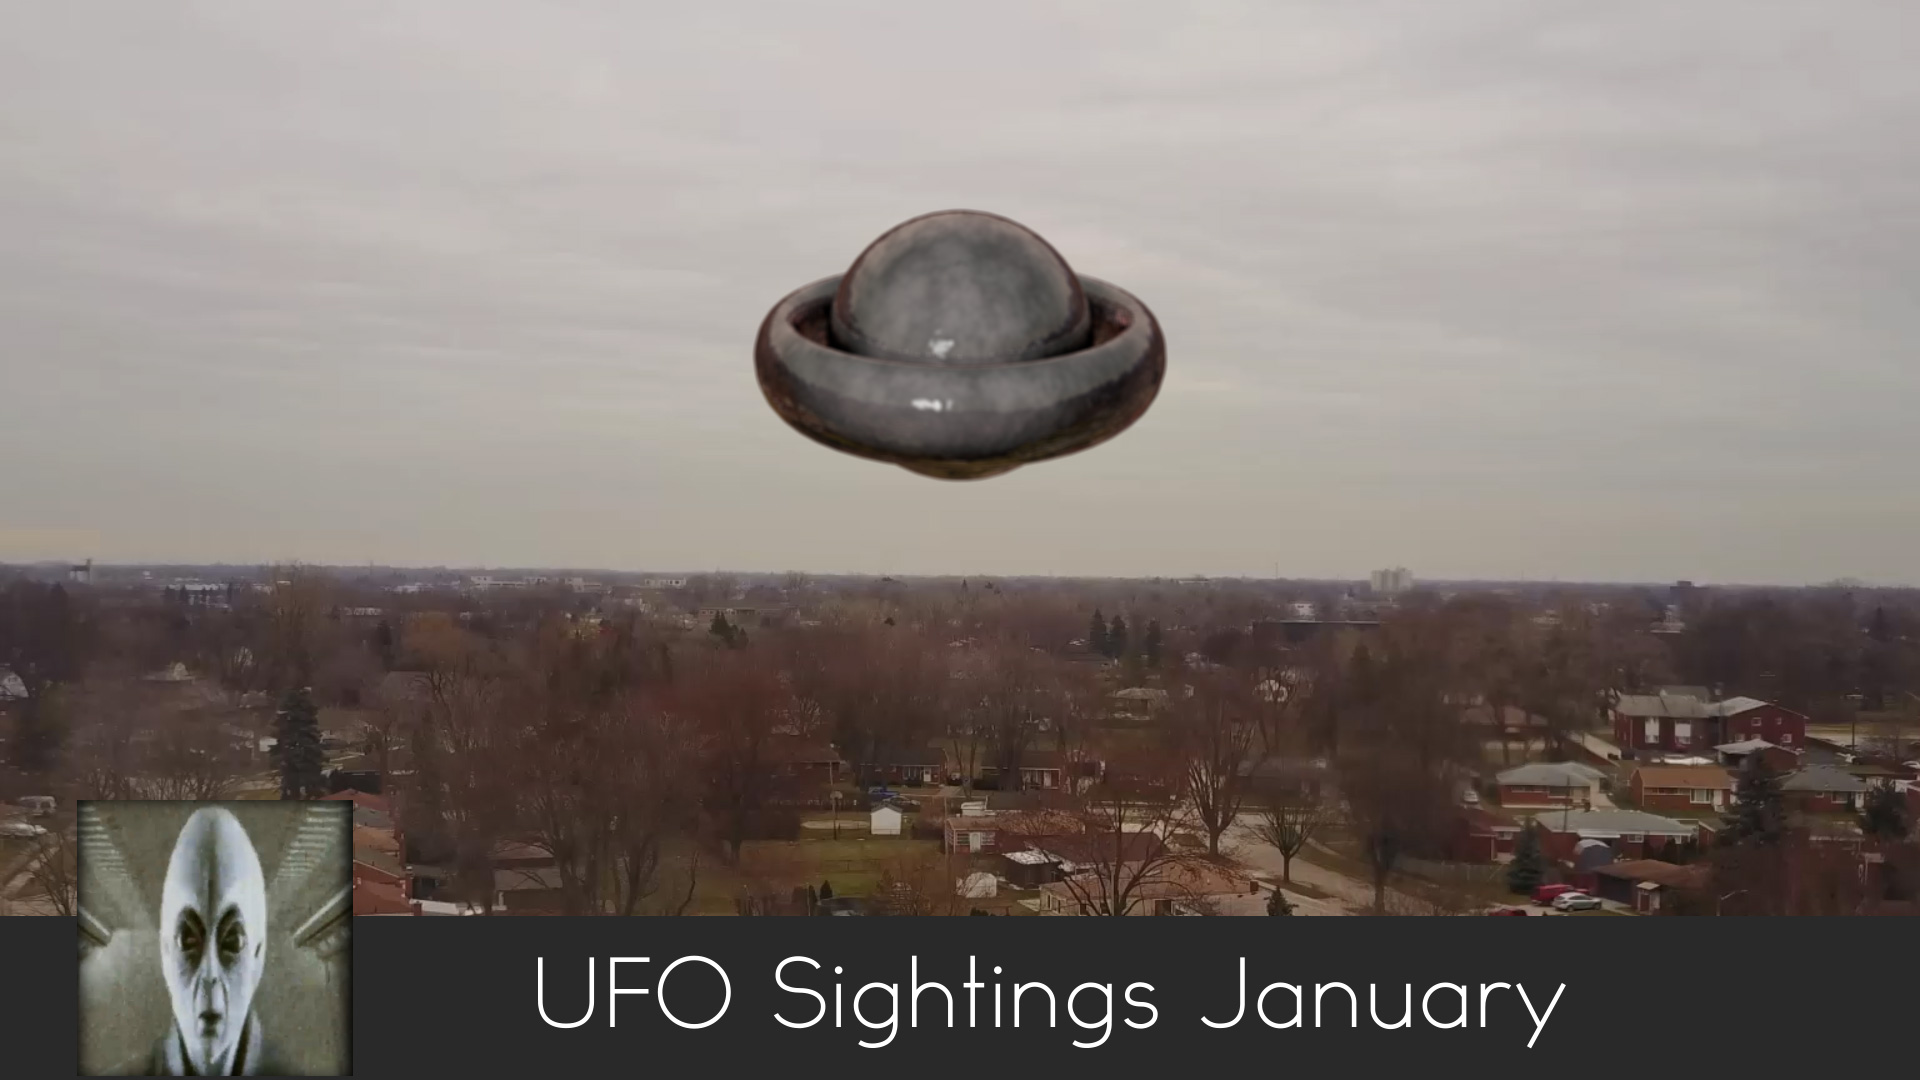 UFO Sightings January 15th 2017 | iufosightings